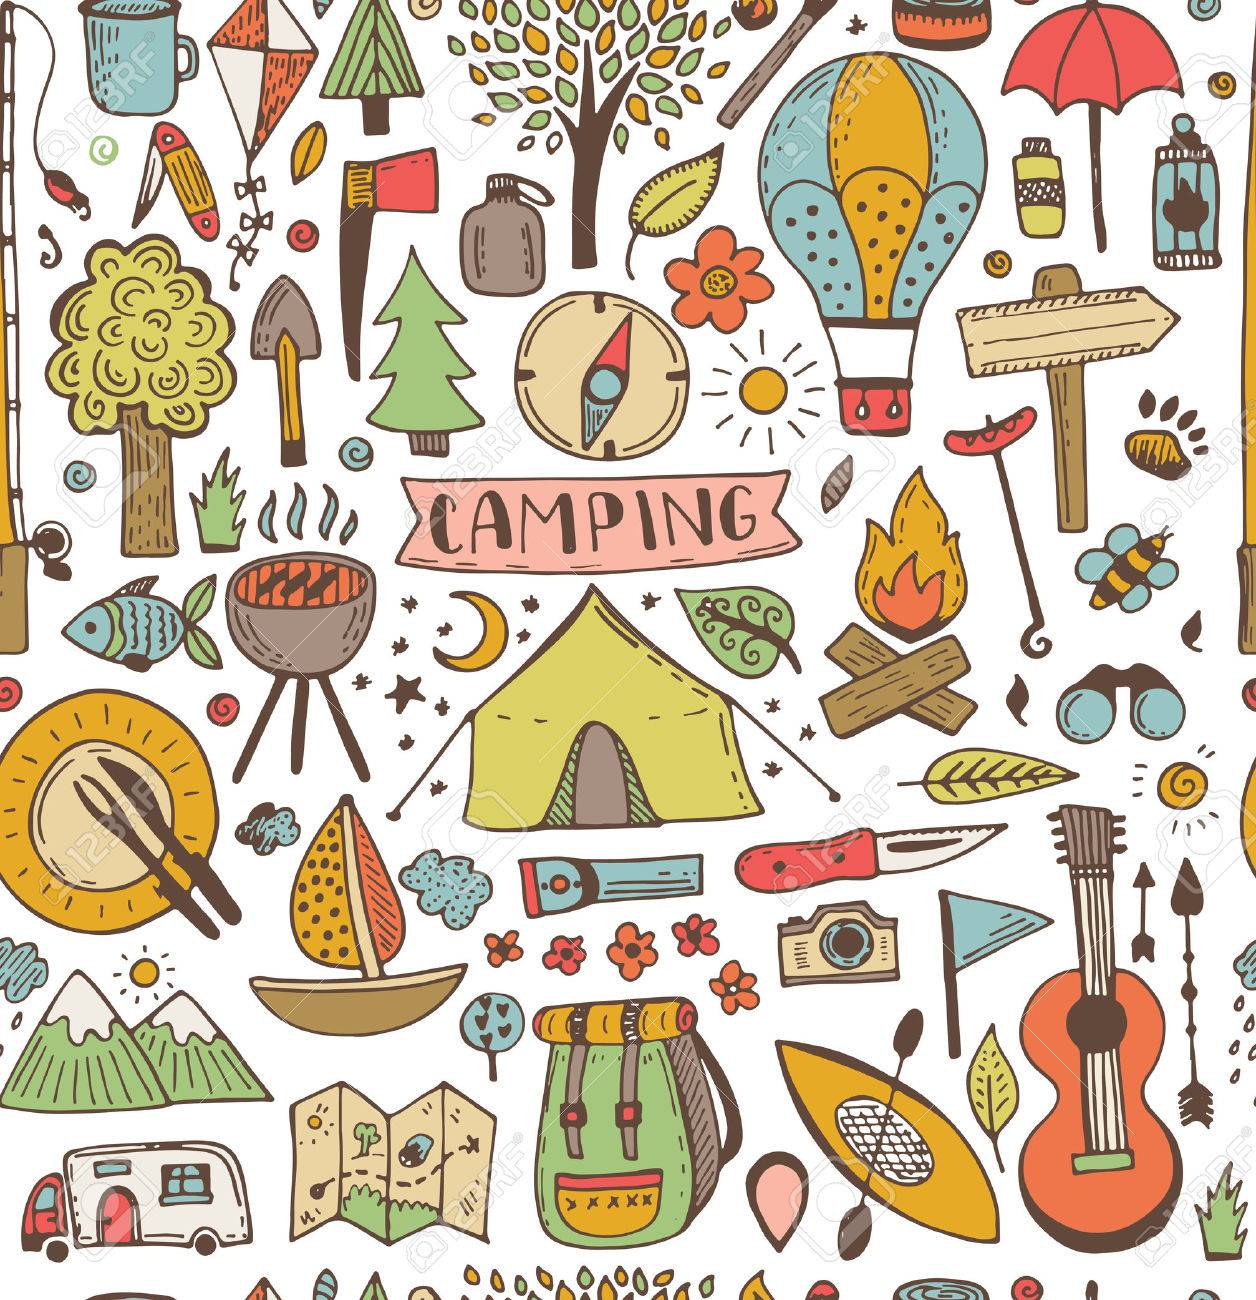 Camping doodle seamless pattern. Vector sketch illustration. Travel and camping items. - 51713309